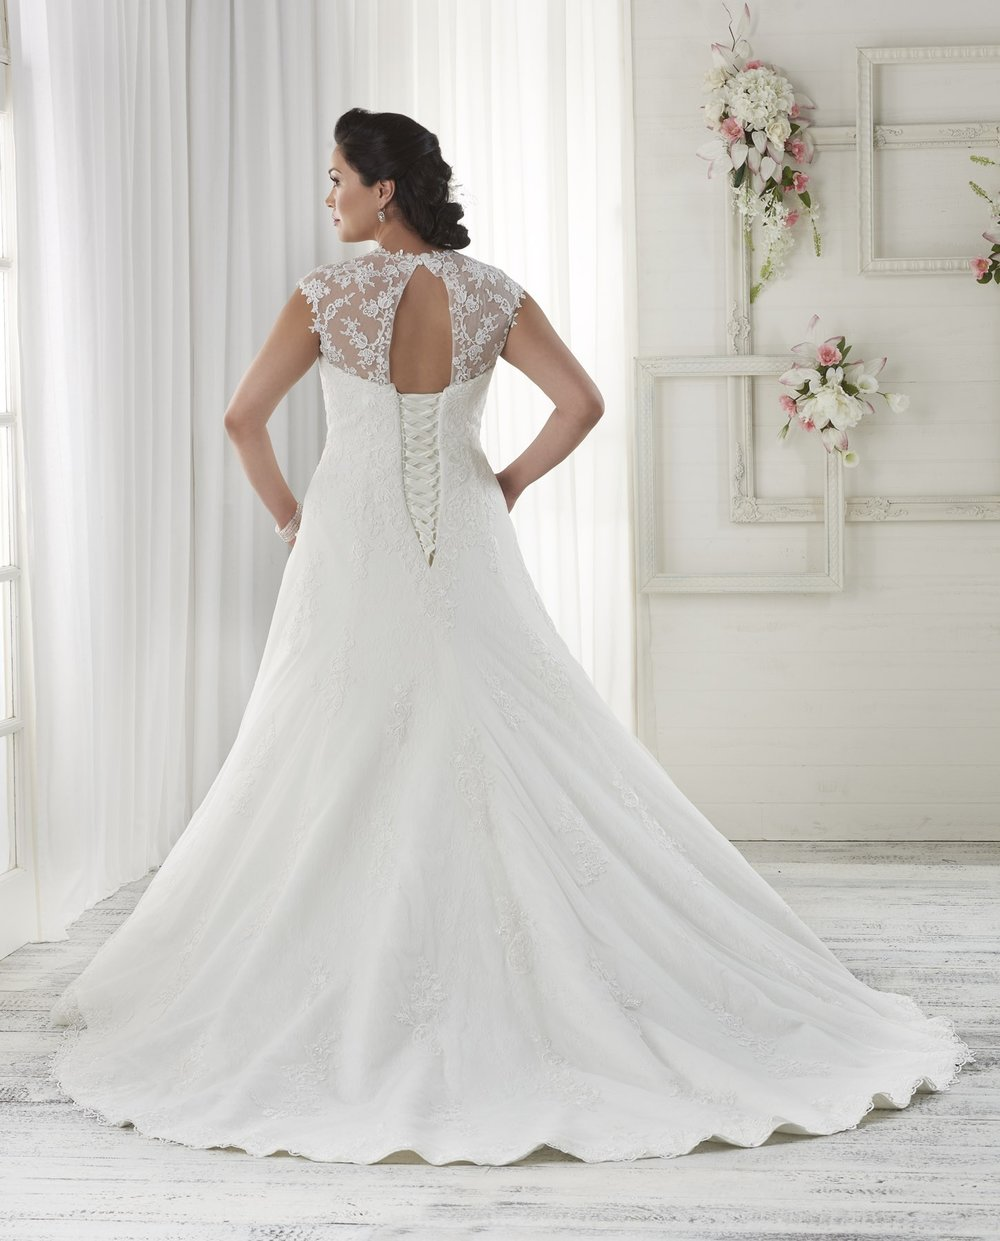 BonnyBridal-BridesbyYoung-PlusSizeWeddingDress-1616-1.jpg